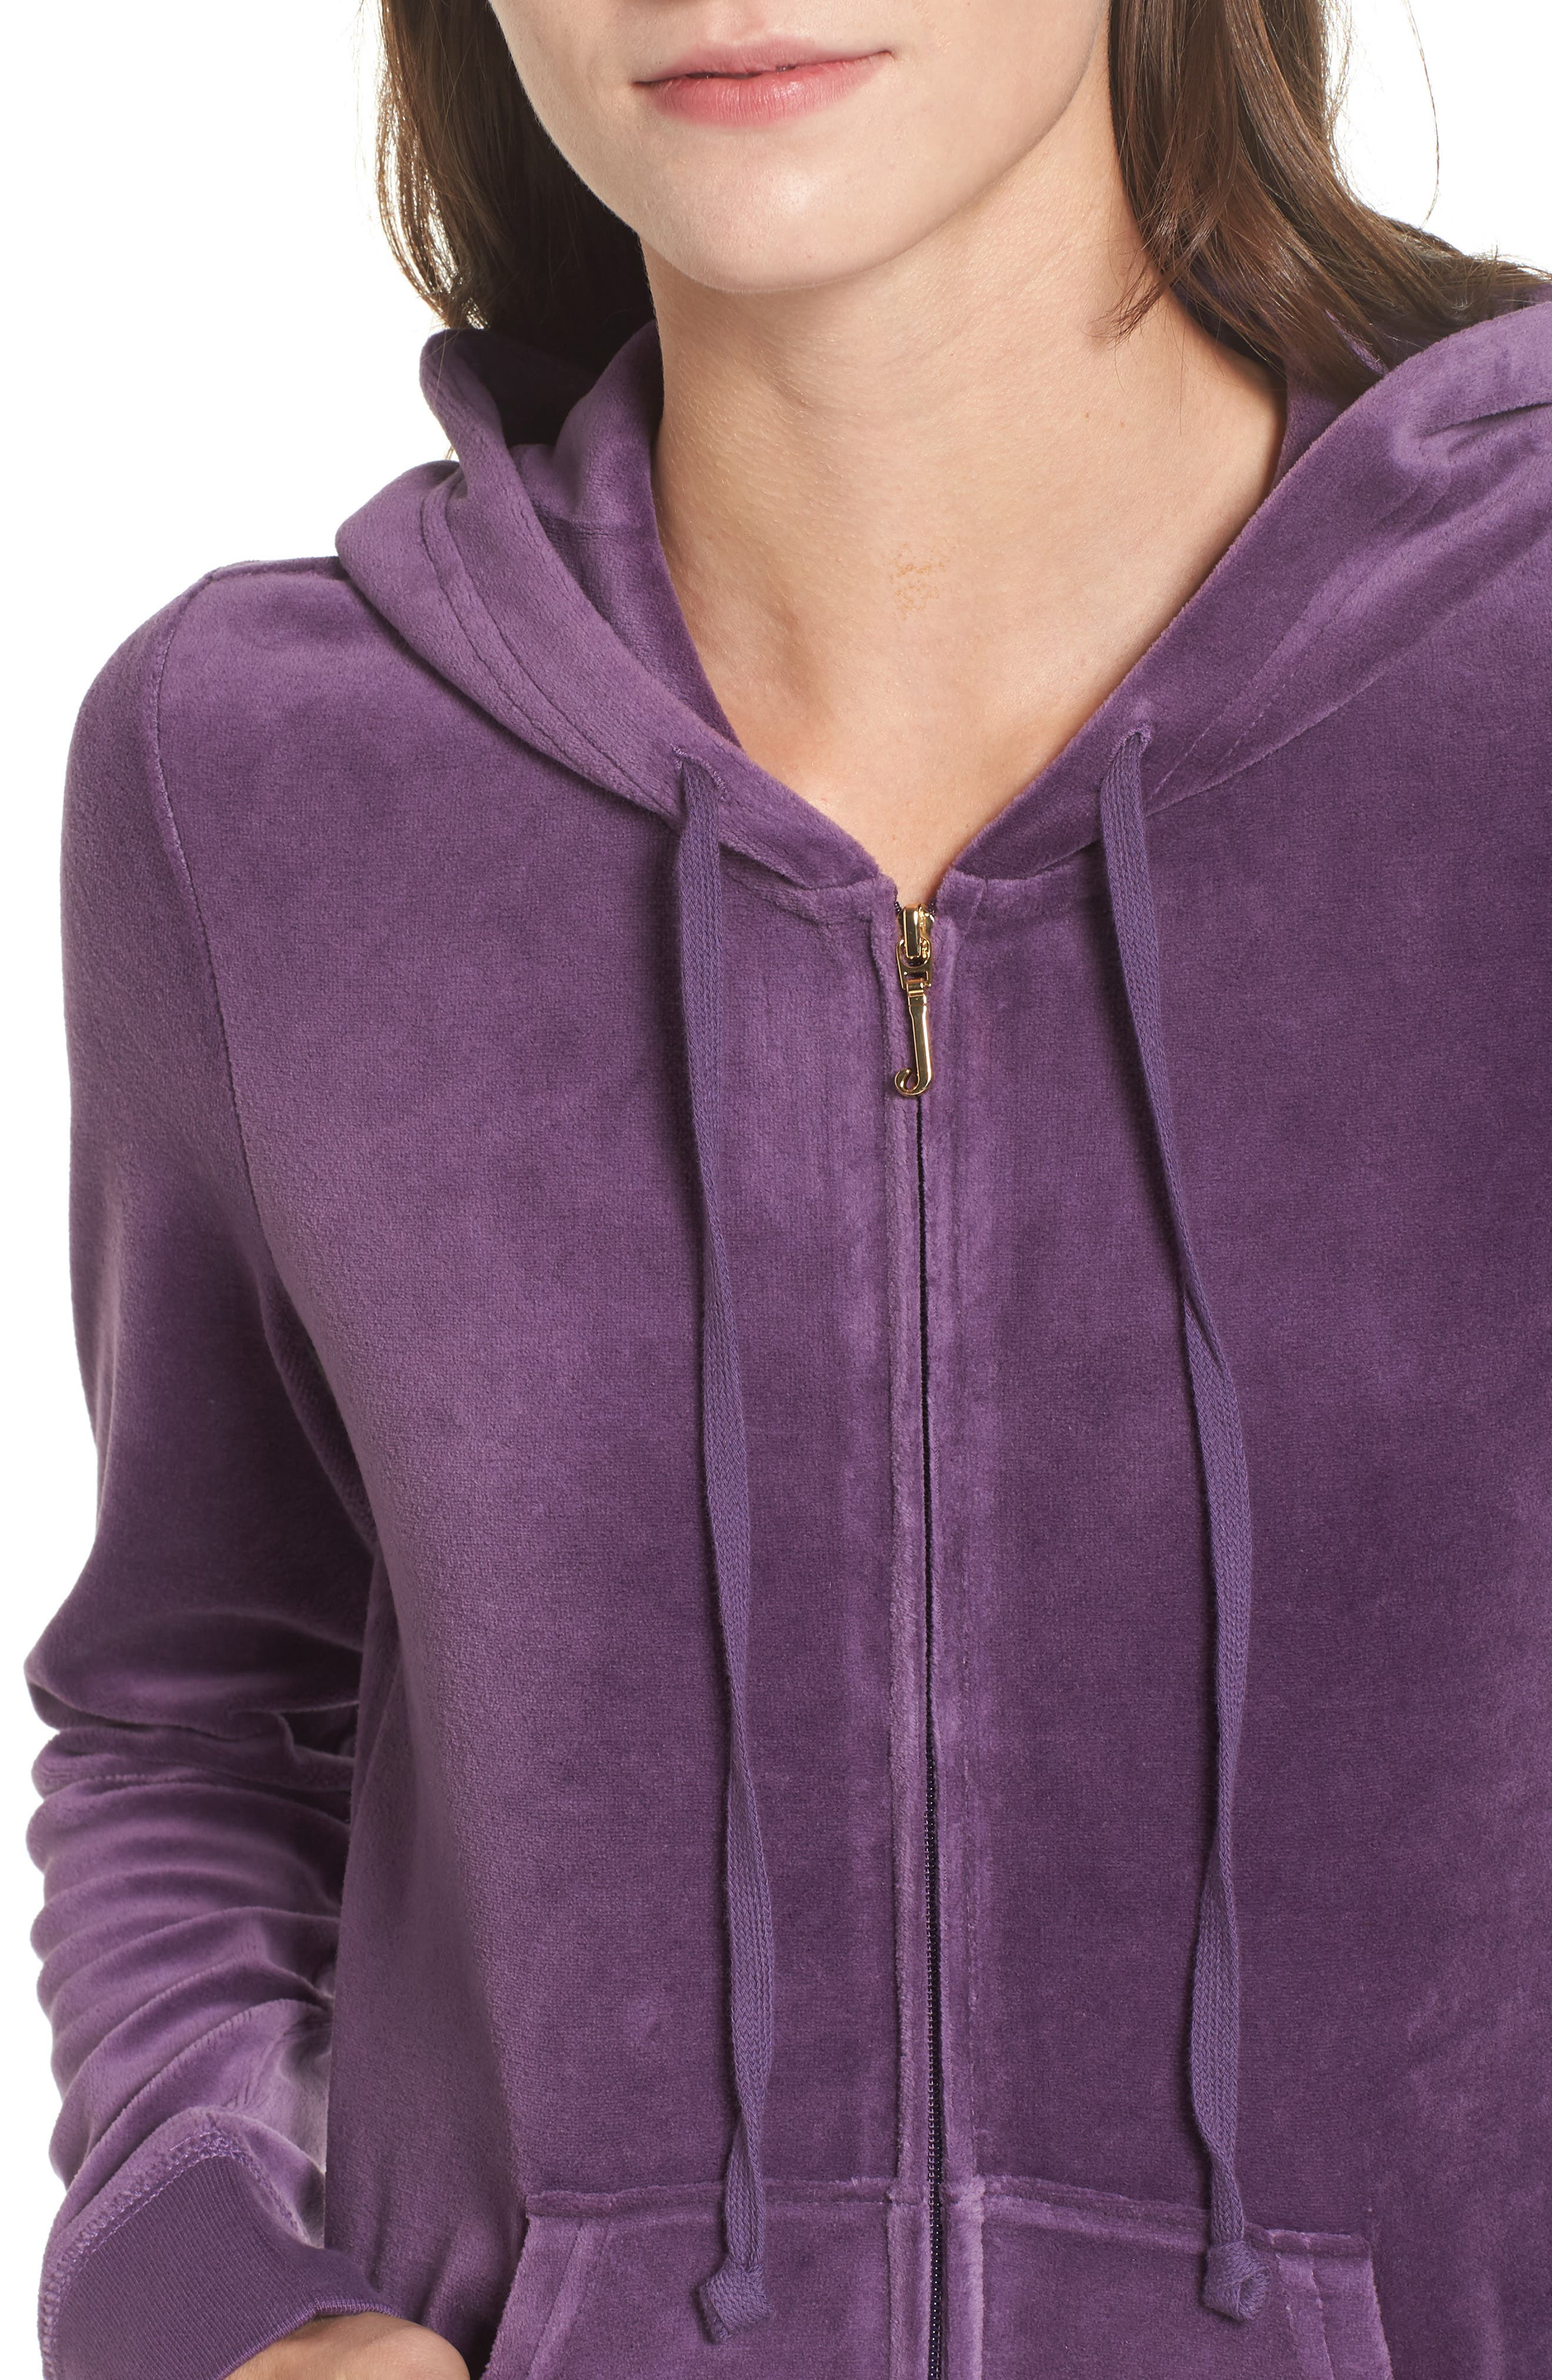 Robertson Velour Hoodie,                             Alternate thumbnail 4, color,                             511